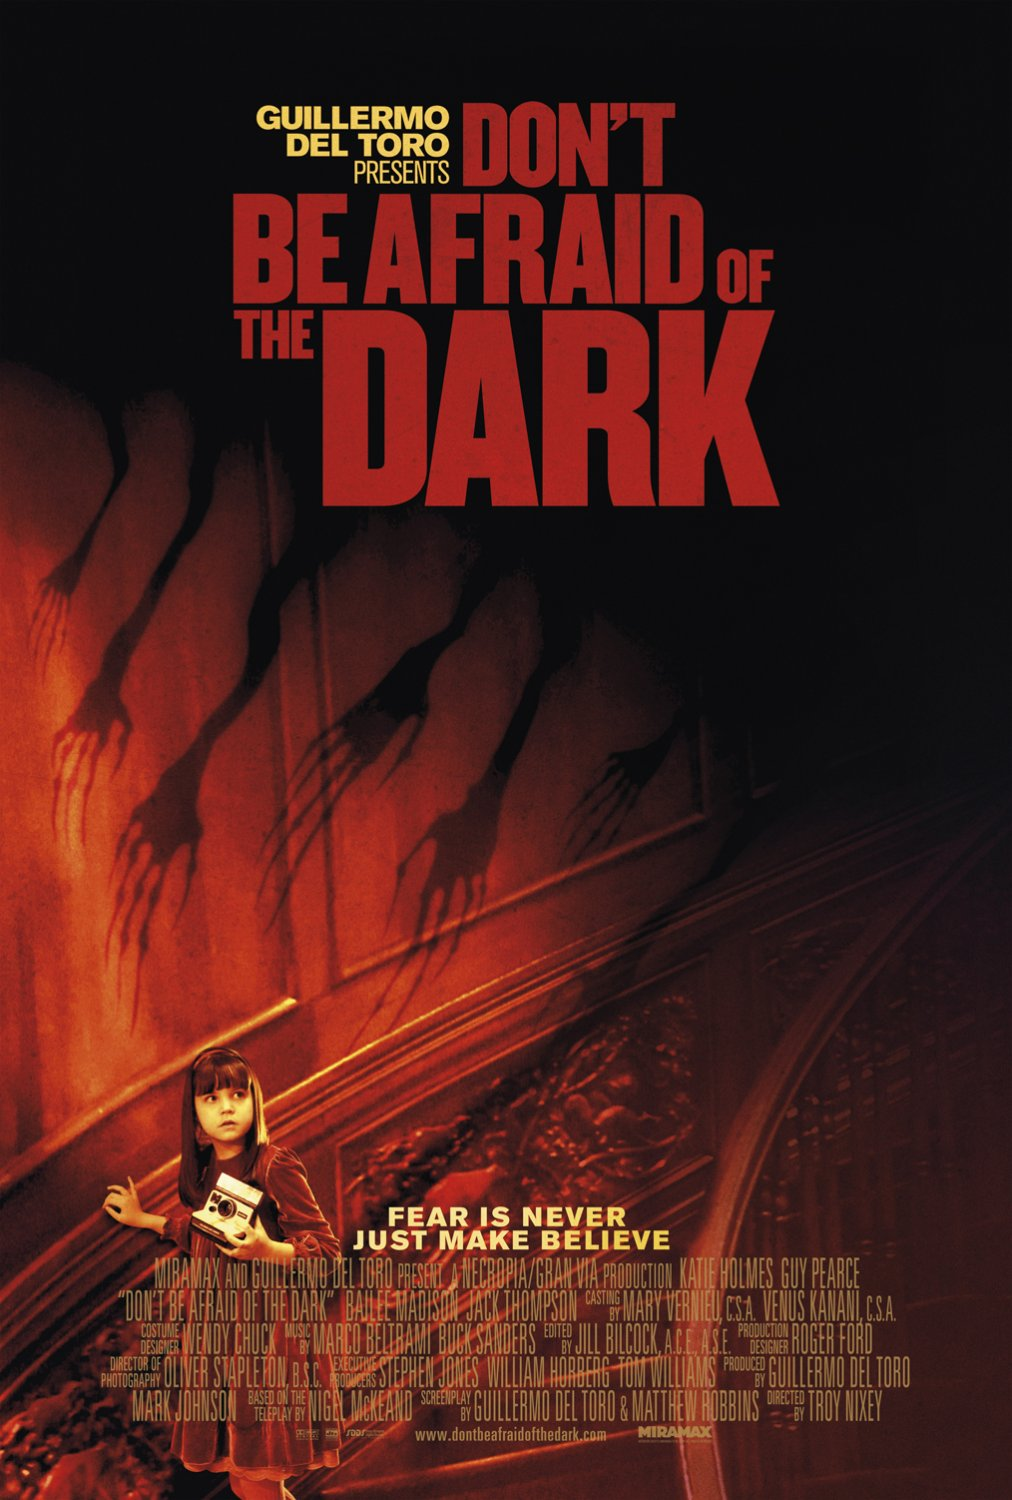 http://4.bp.blogspot.com/-sZ3g5-e9aSE/TvJm7GMT86I/AAAAAAAAAEs/Lzbc4DDeit0/s1600/Dont-Be-Afraid-of-the-Dark-Movie-Poster.jpg